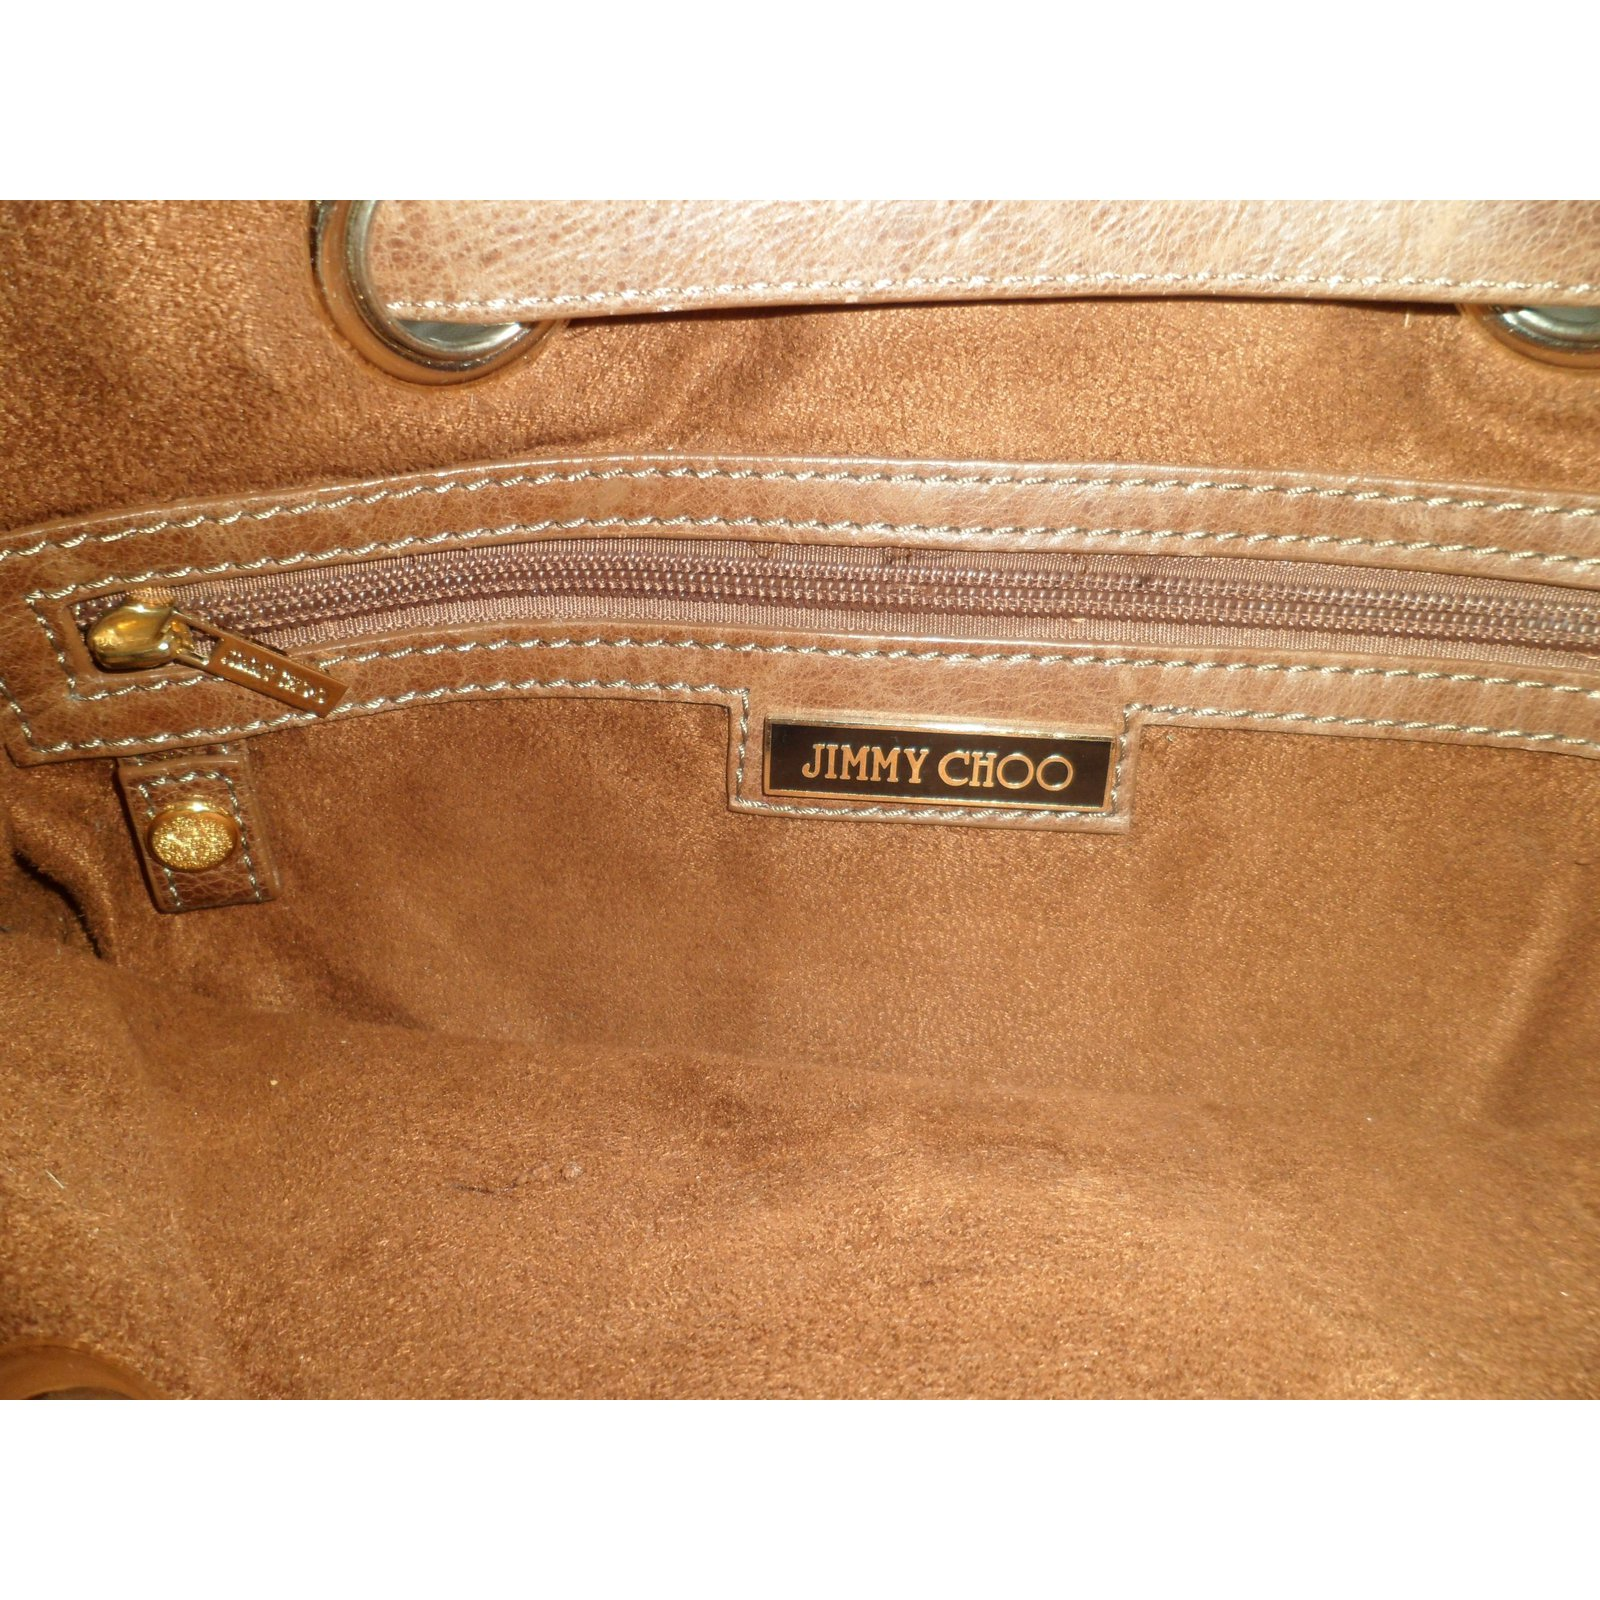 4f5d284469 Jimmy Choo Handbags Handbags Leather Caramel ref.13606 - Joli Closet